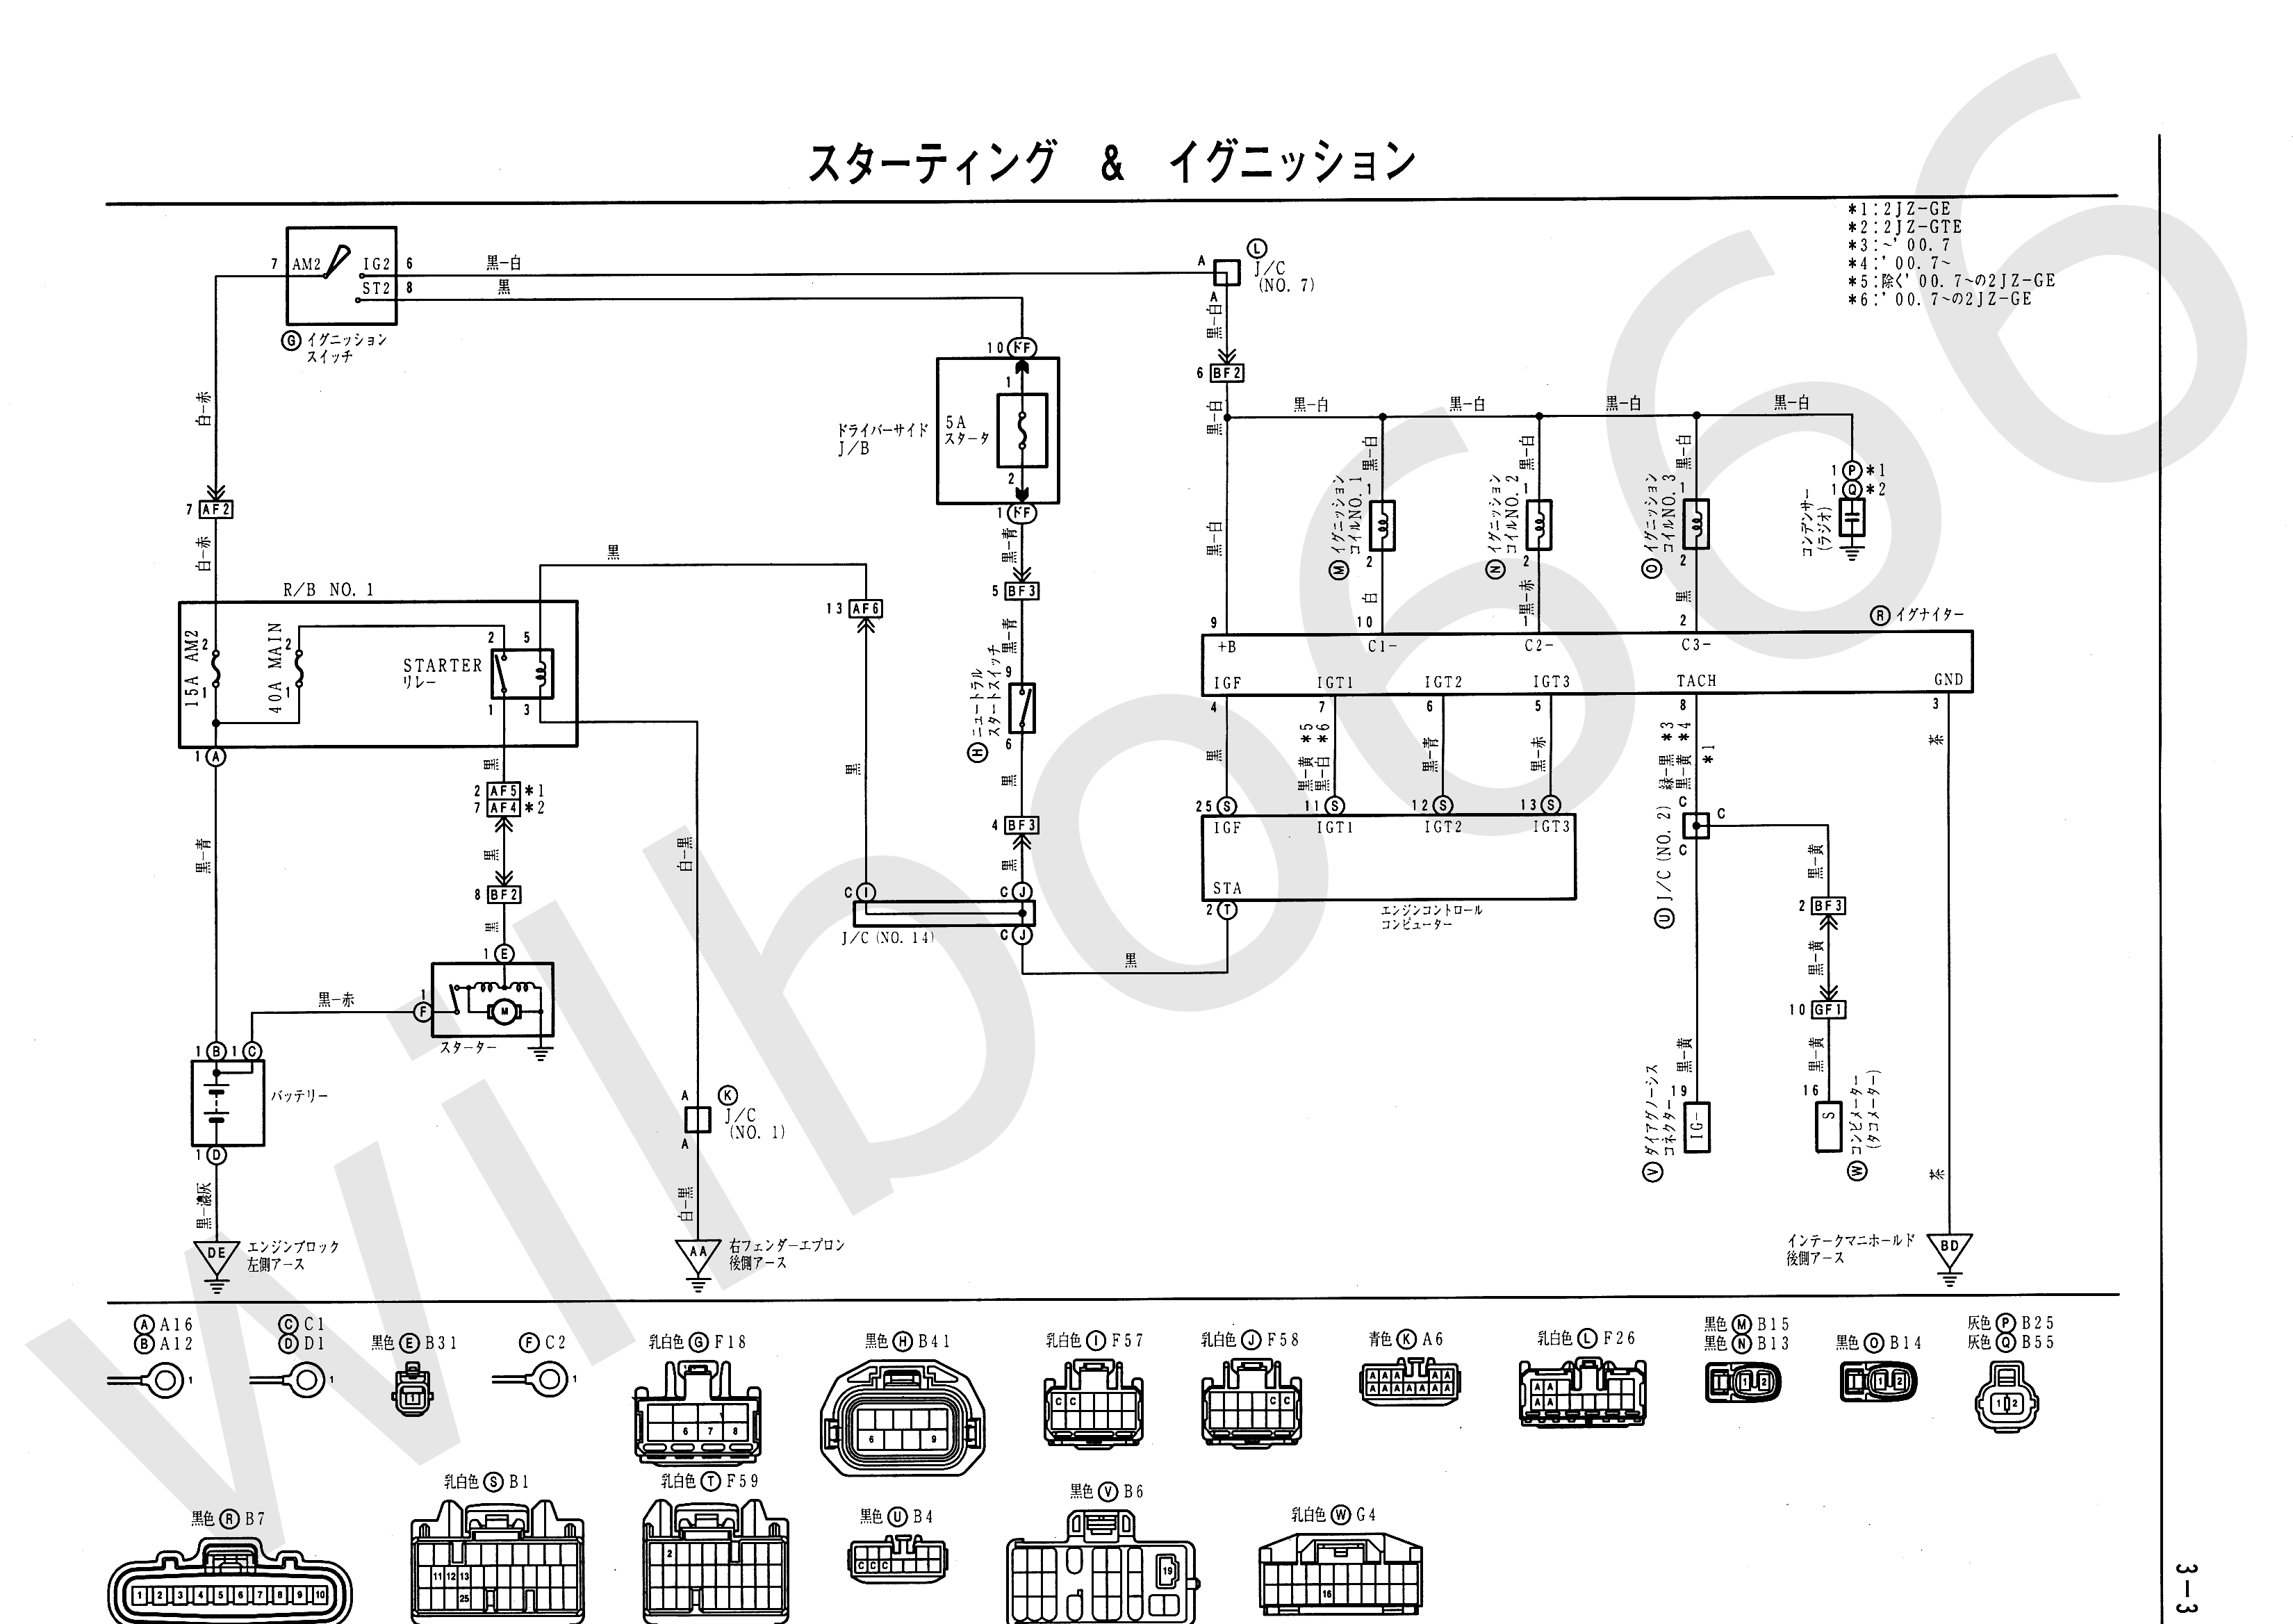 Toyota Aristo Jzs161 Wiring Diagram Library Jeep Wrangler Jk Ecu 2jz Gte Vvti Diagrams